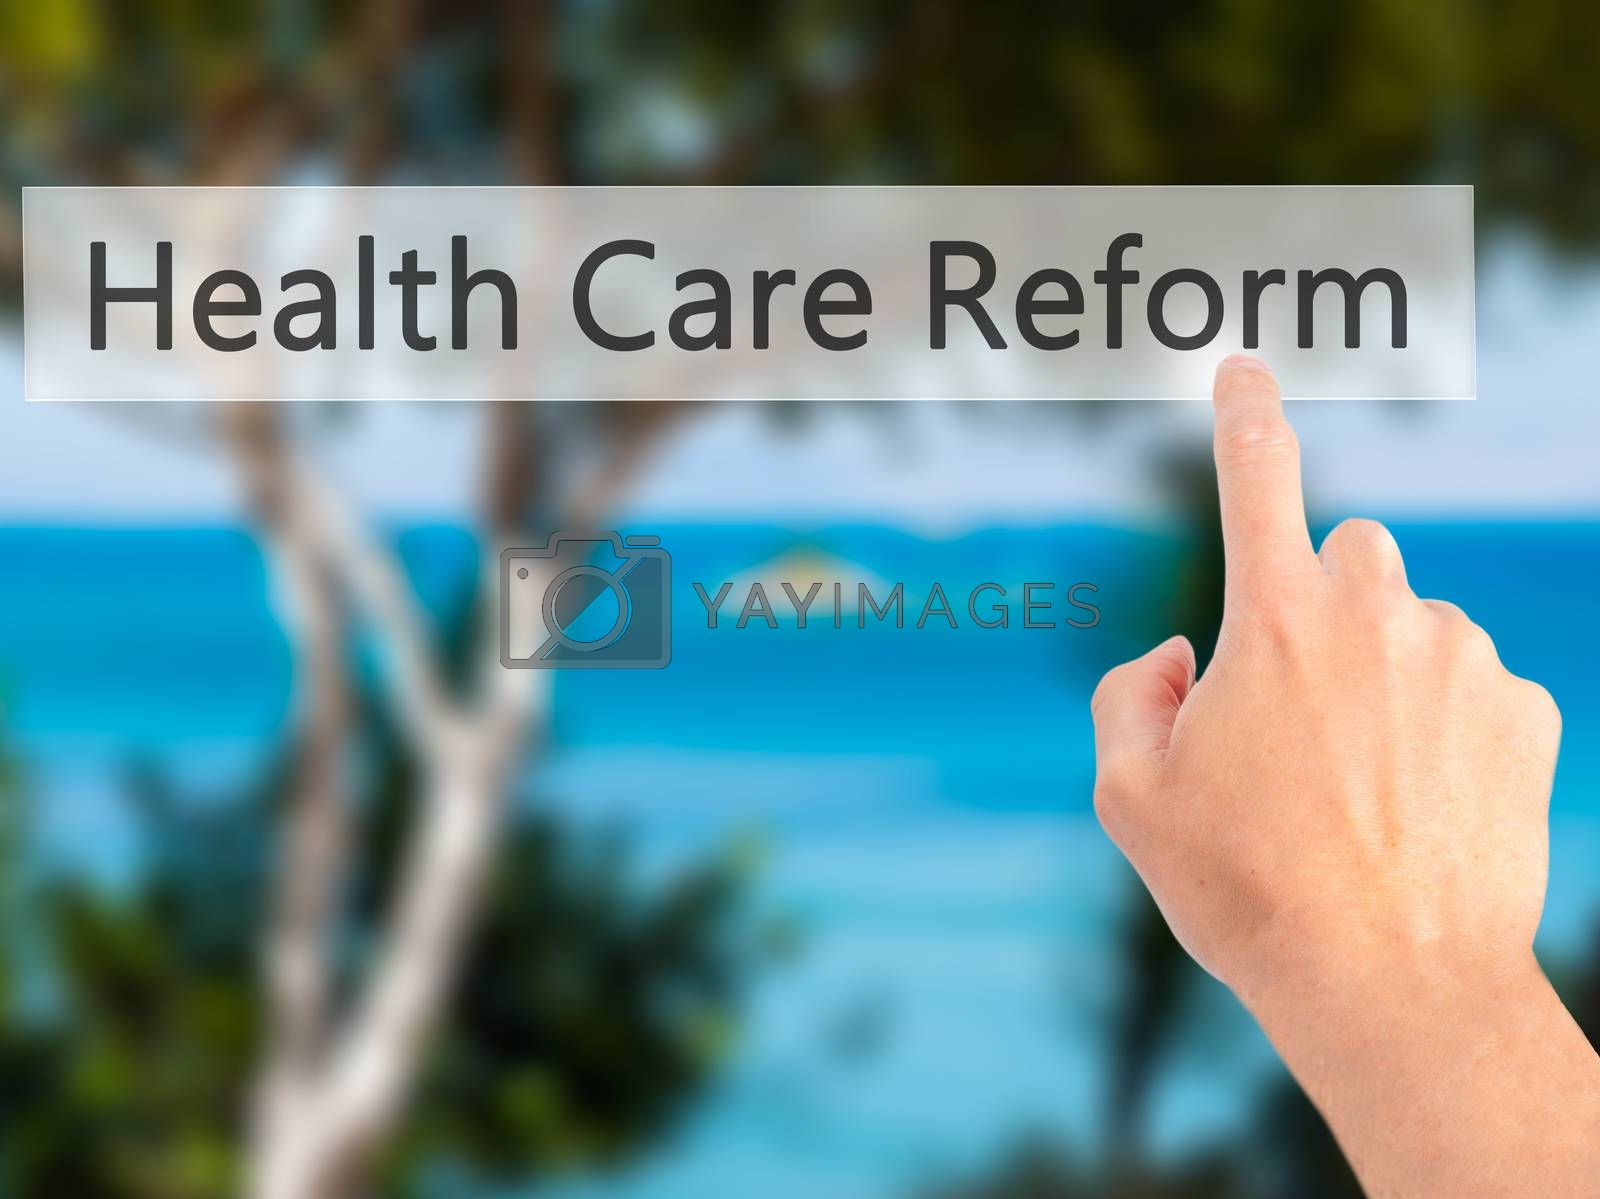 Health Care Reform - Hand pressing a button on blurred backgroun by netsay.net